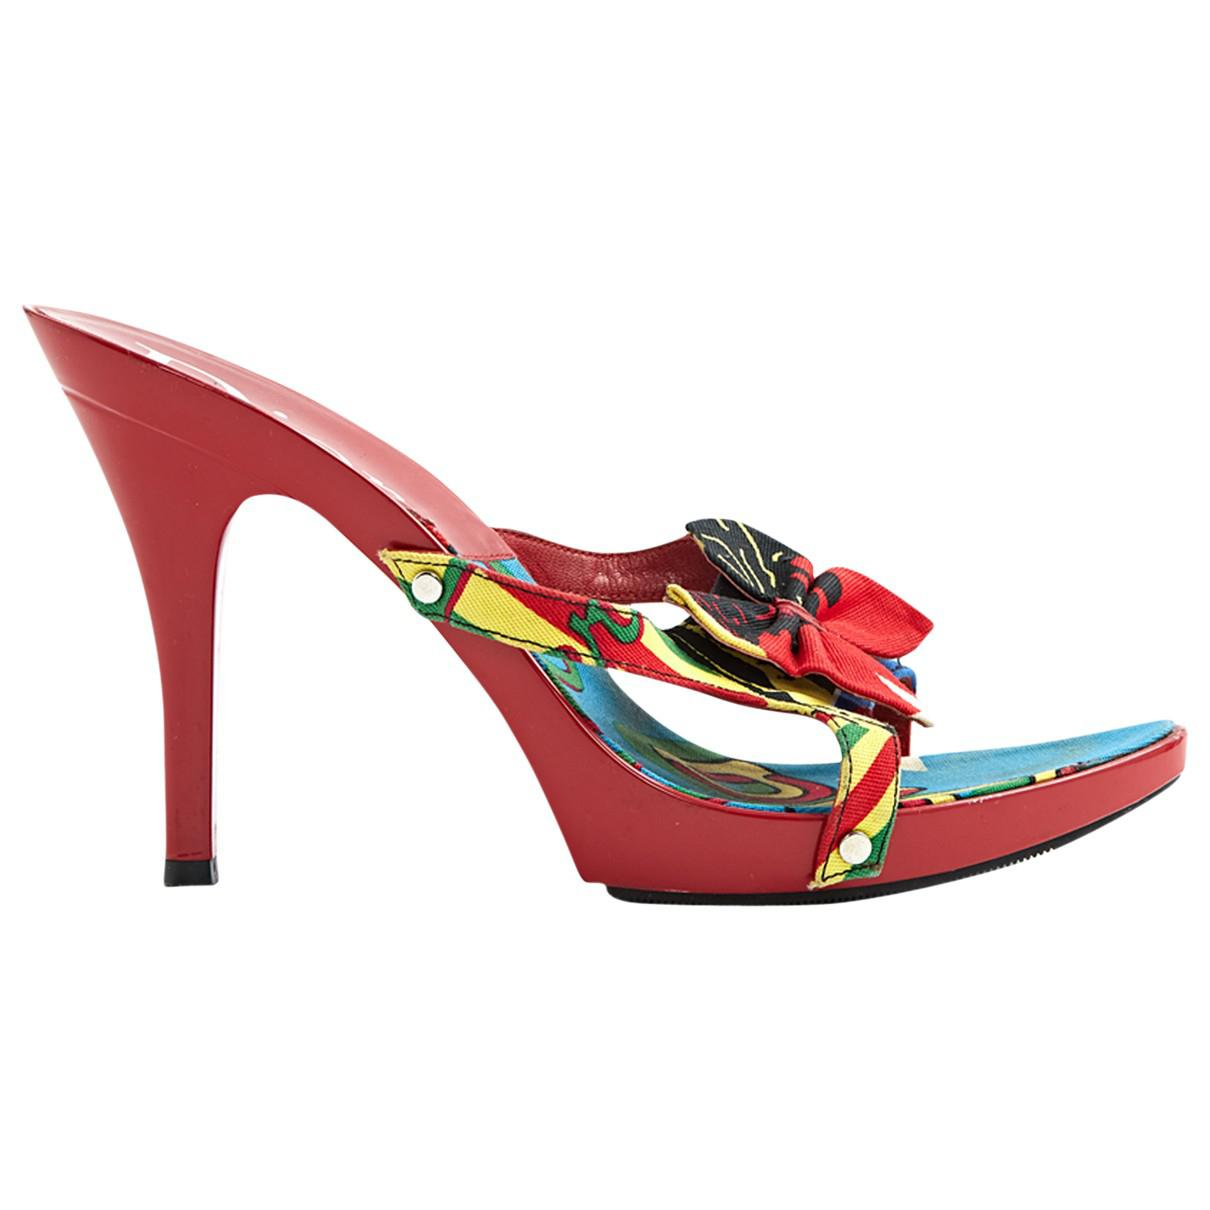 Pre-owned - Cloth sandals Dior uuKx1